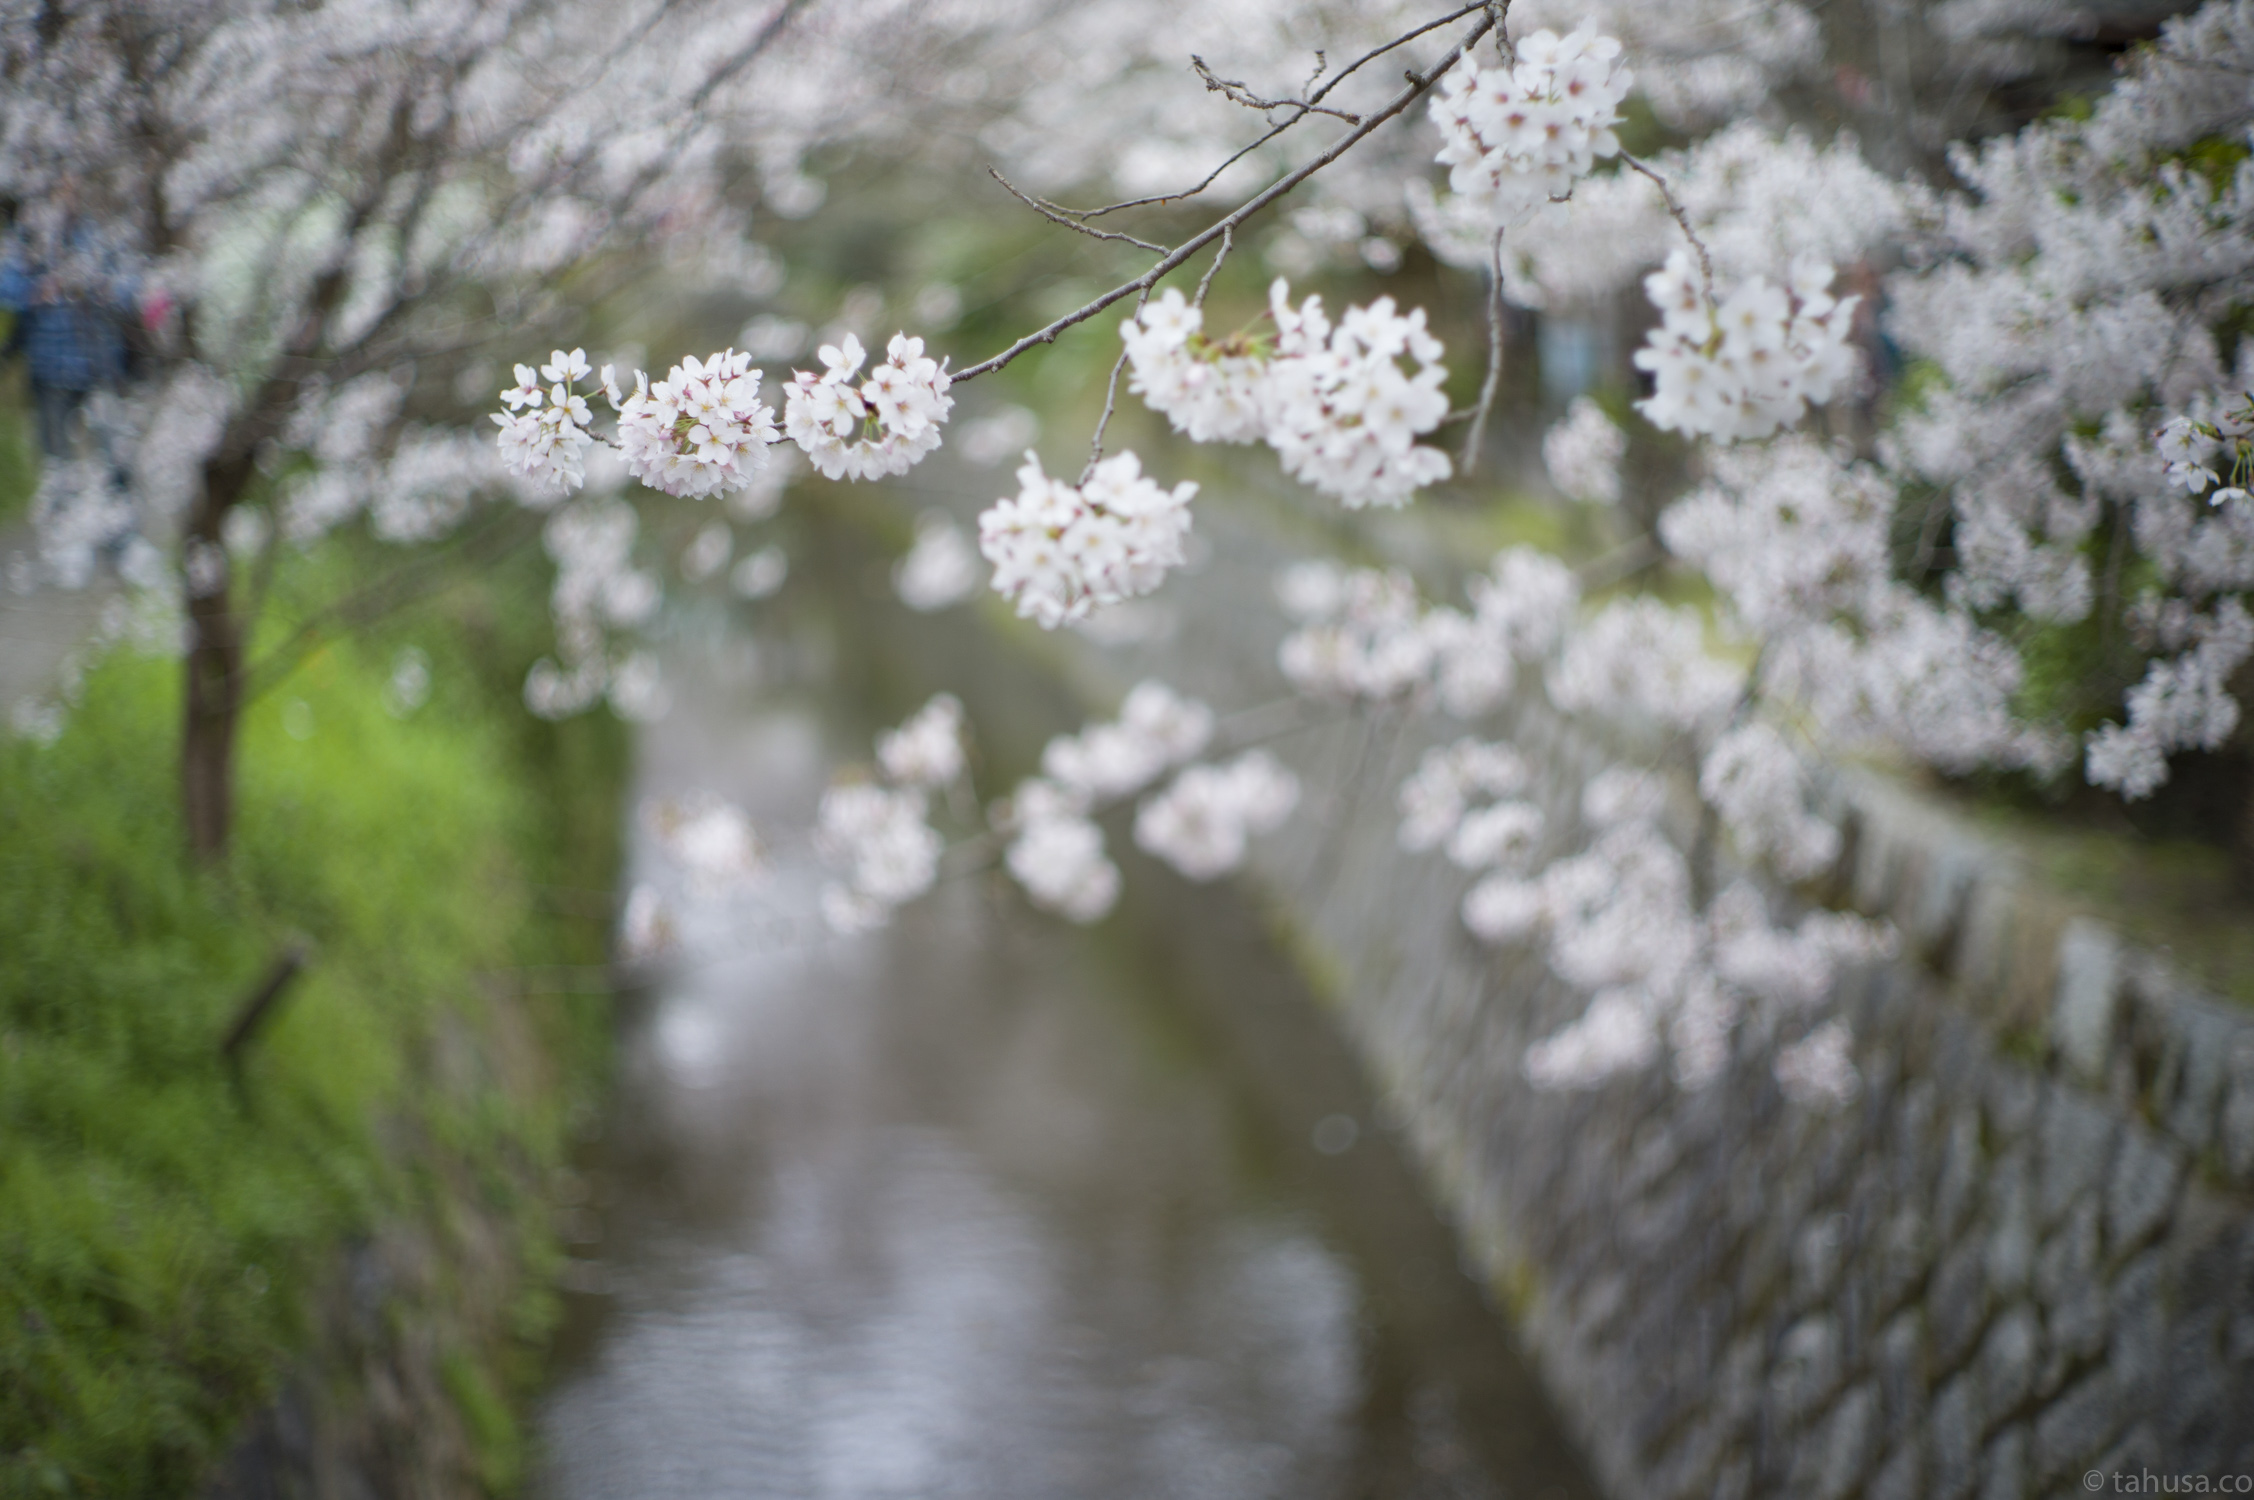 sakura-bokeh-in-Philosopher's-Walk-kyoto-sakura-season-japan-japanese-street-snap-portrait-using-leica-m9-m9p-Noctilux-50mm-50-f1-f1.0-e58-v1-digital-camera-travel